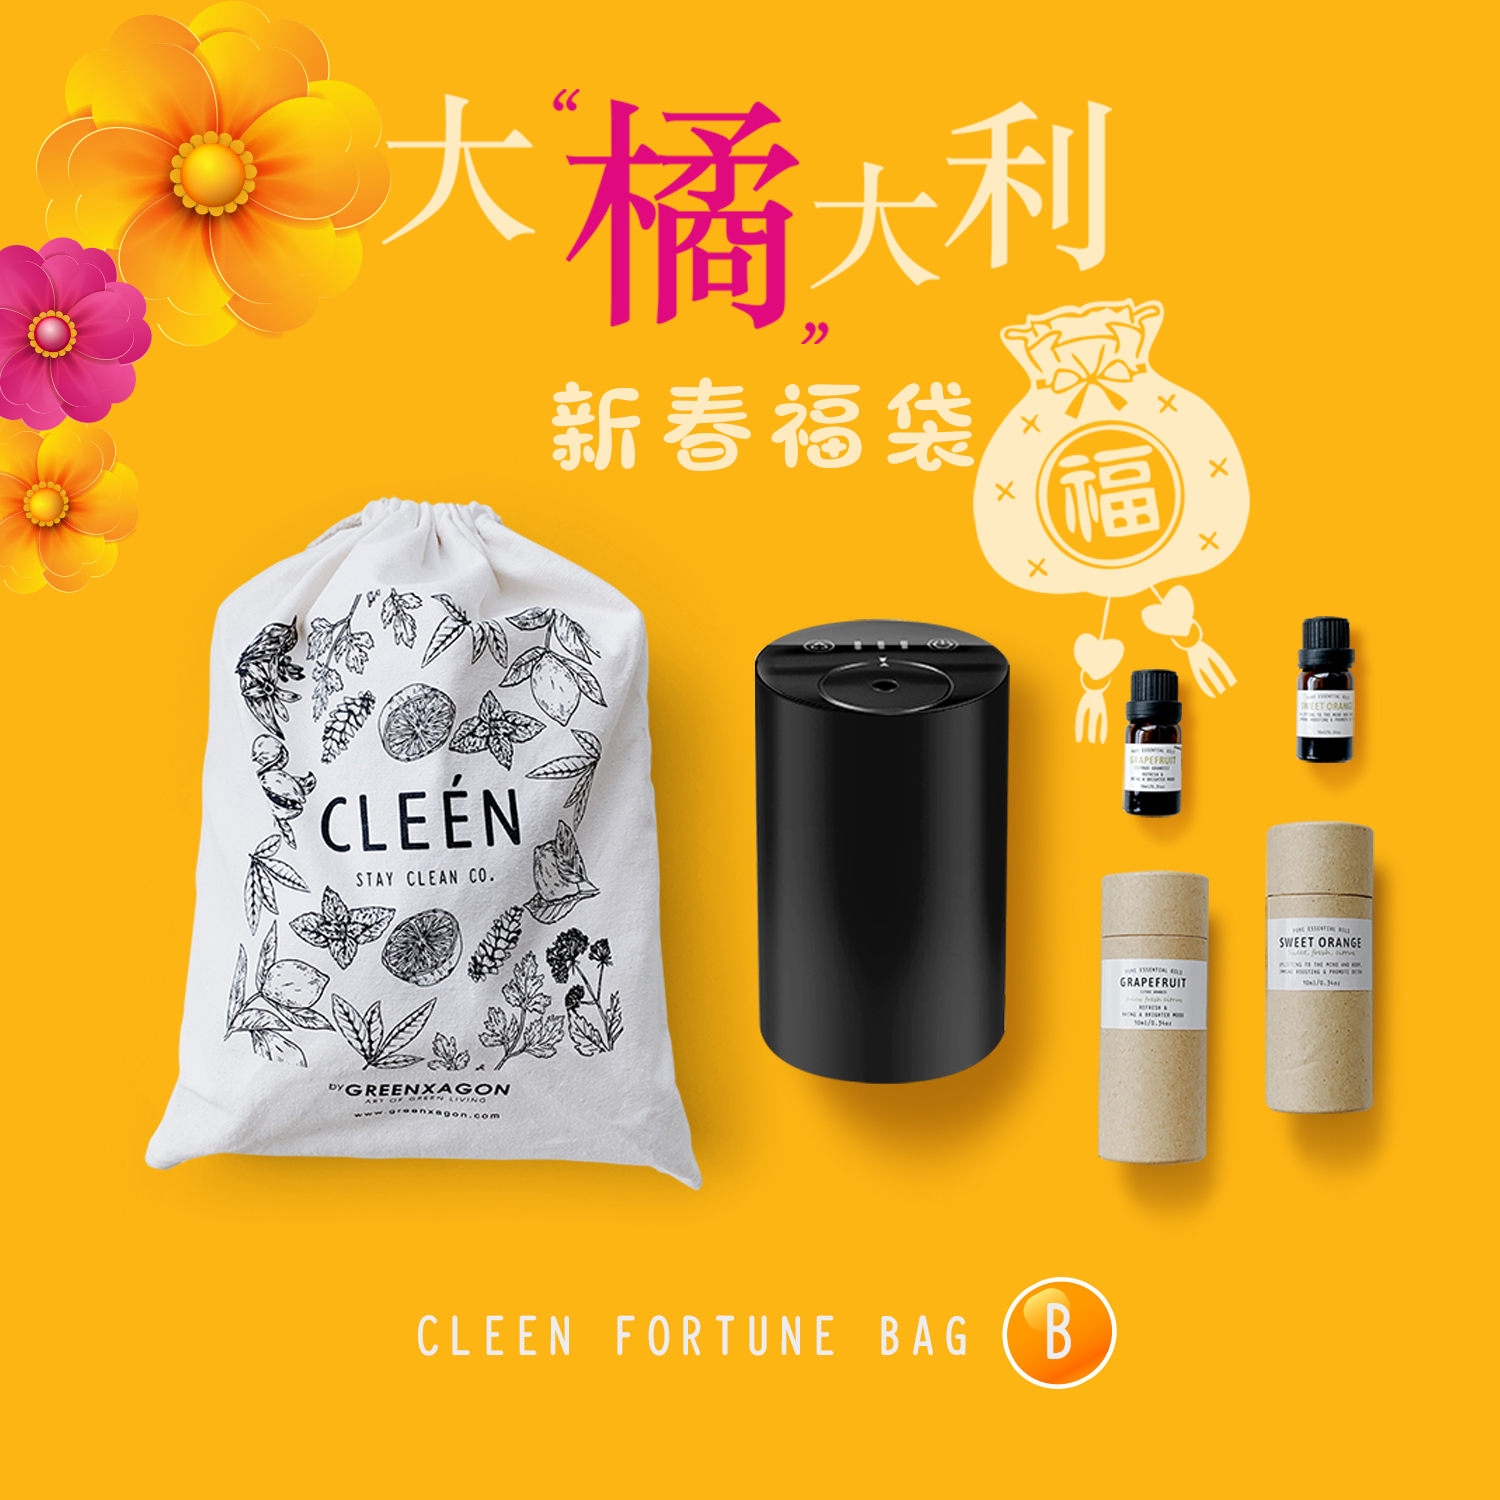 CNY 2020 futune bag Online_Product page_B.jpg